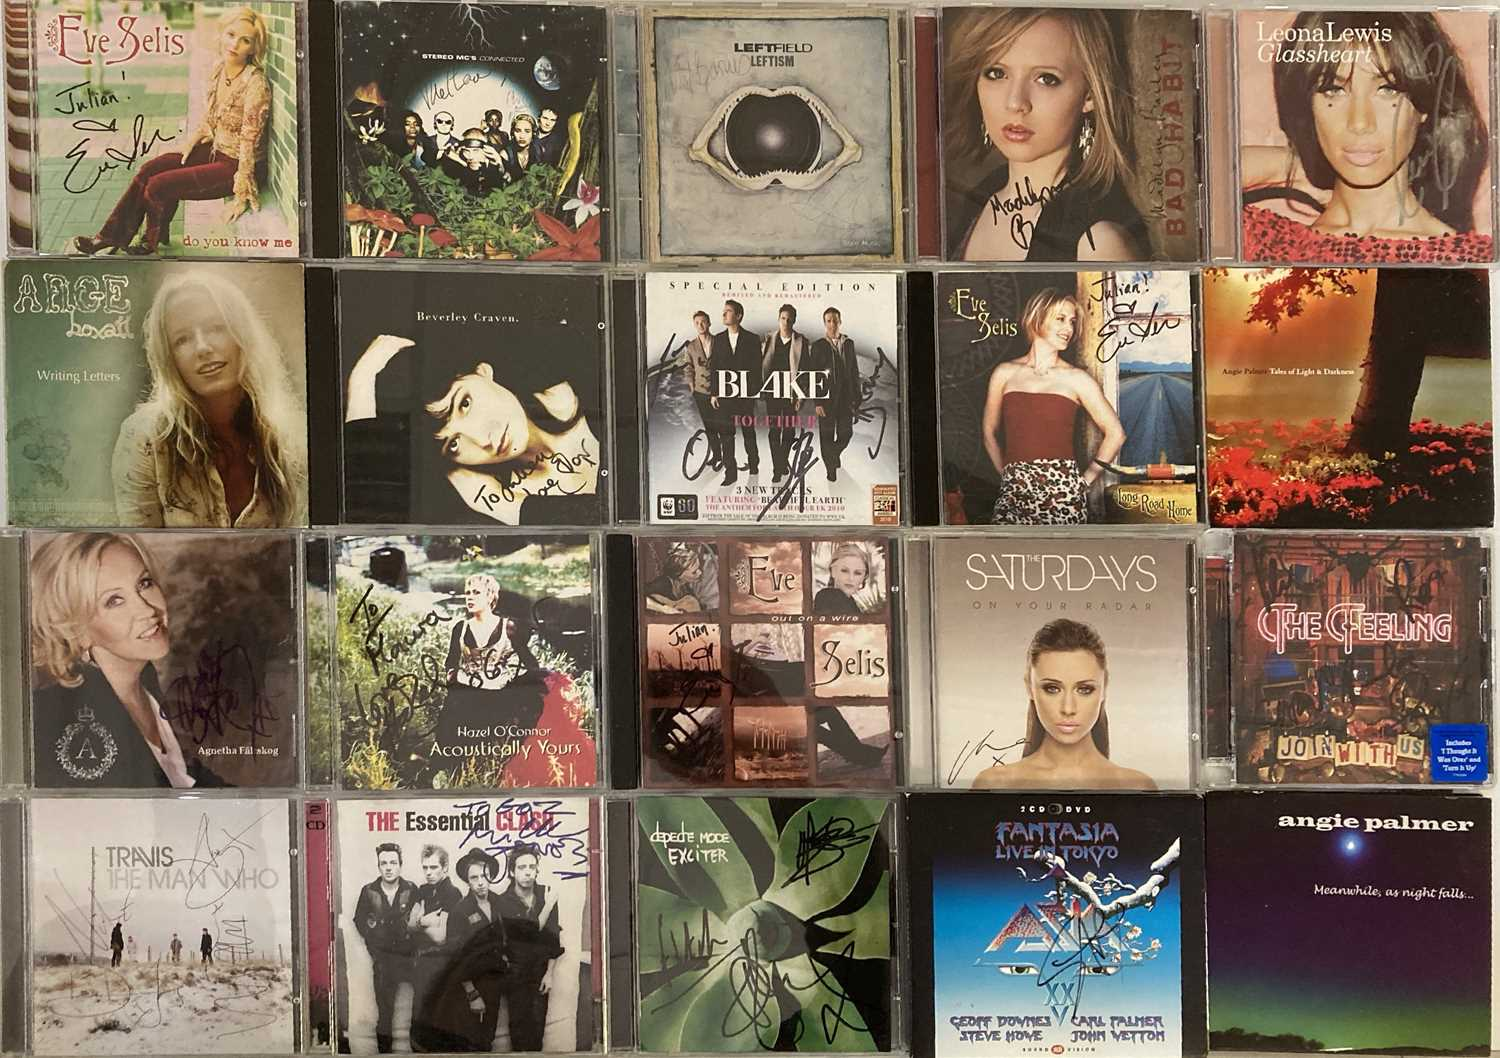 SIGNED CDS / LPS - THE CLASH / DEPECHE MODE AND MORE. - Image 8 of 12